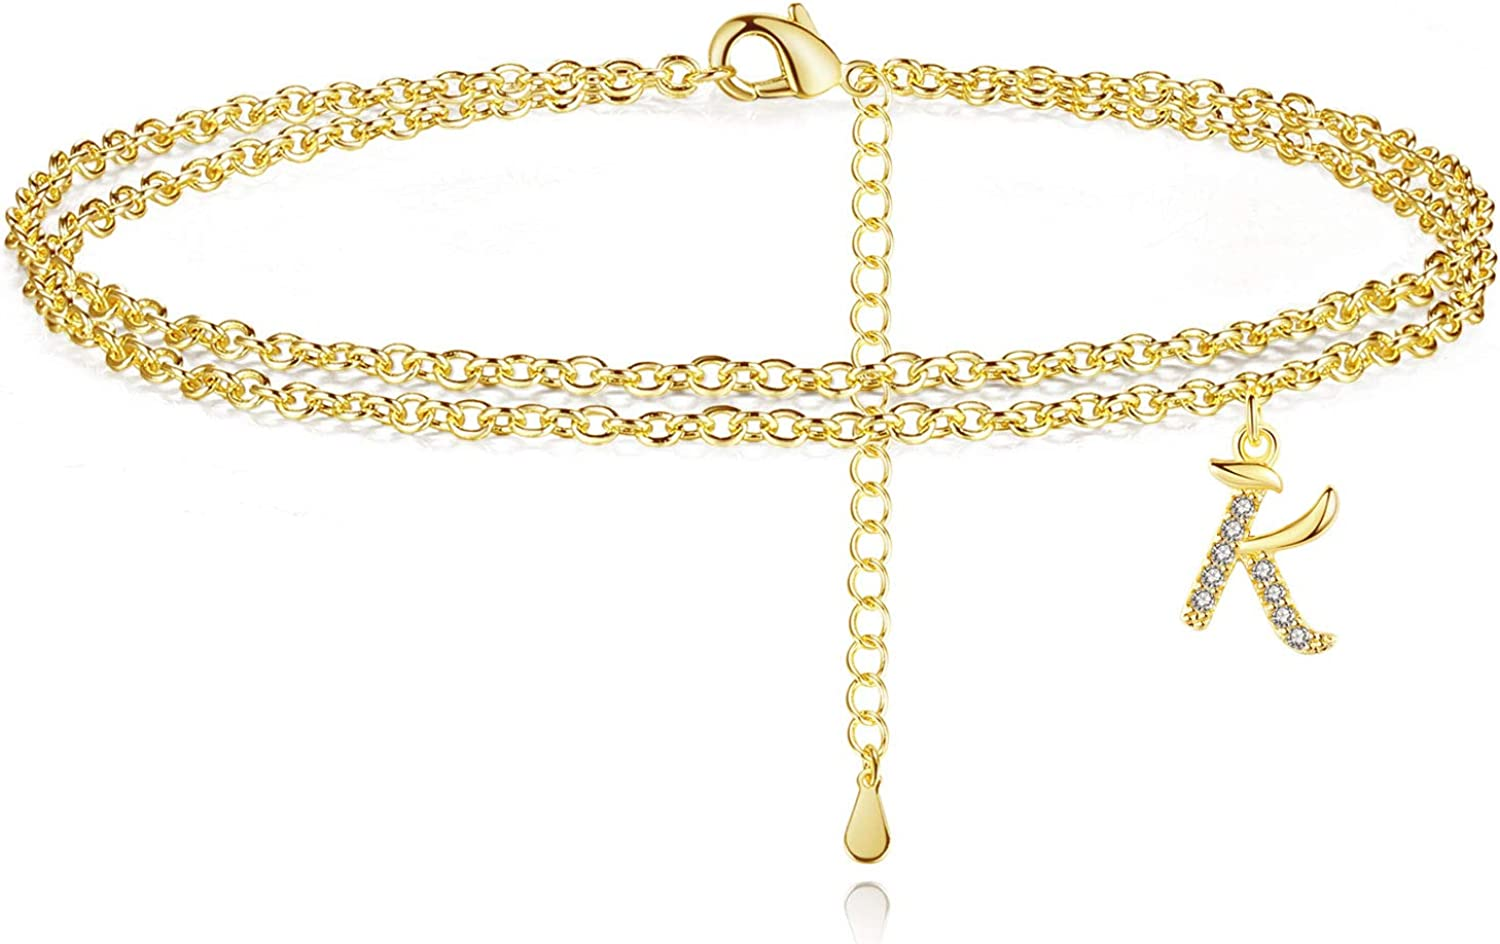 Ankle Bracelets for Women Gold Initial Layered Anklets Jewelry Gift for Women Teen Girls with Letter K